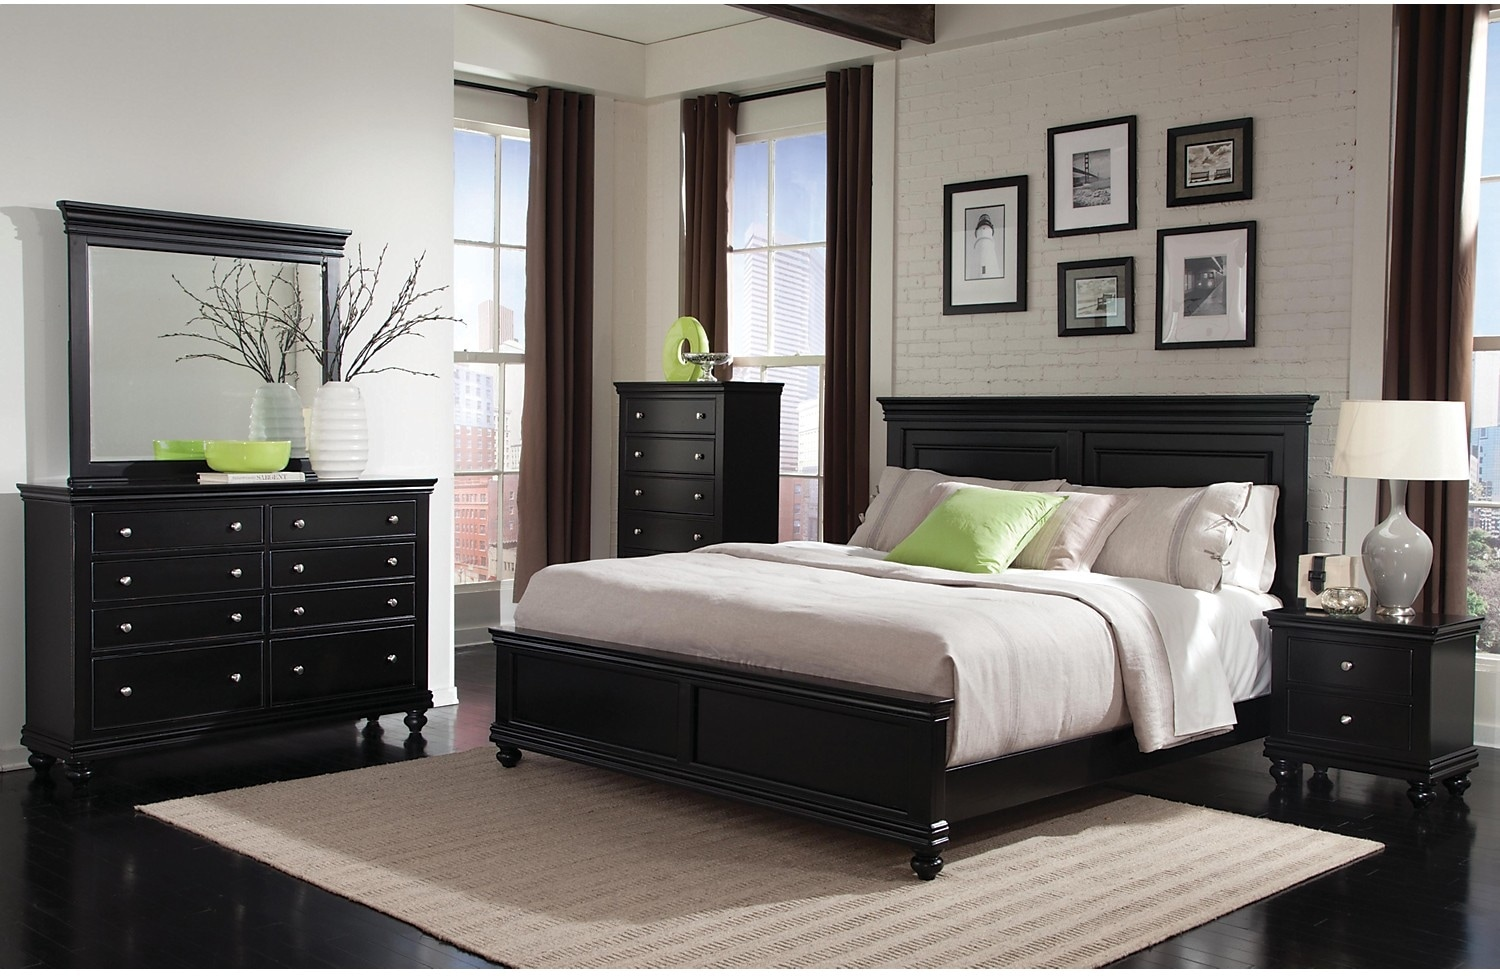 Bedroom Furniture - Bridgeport 7-Piece King Bedroom Set - Black